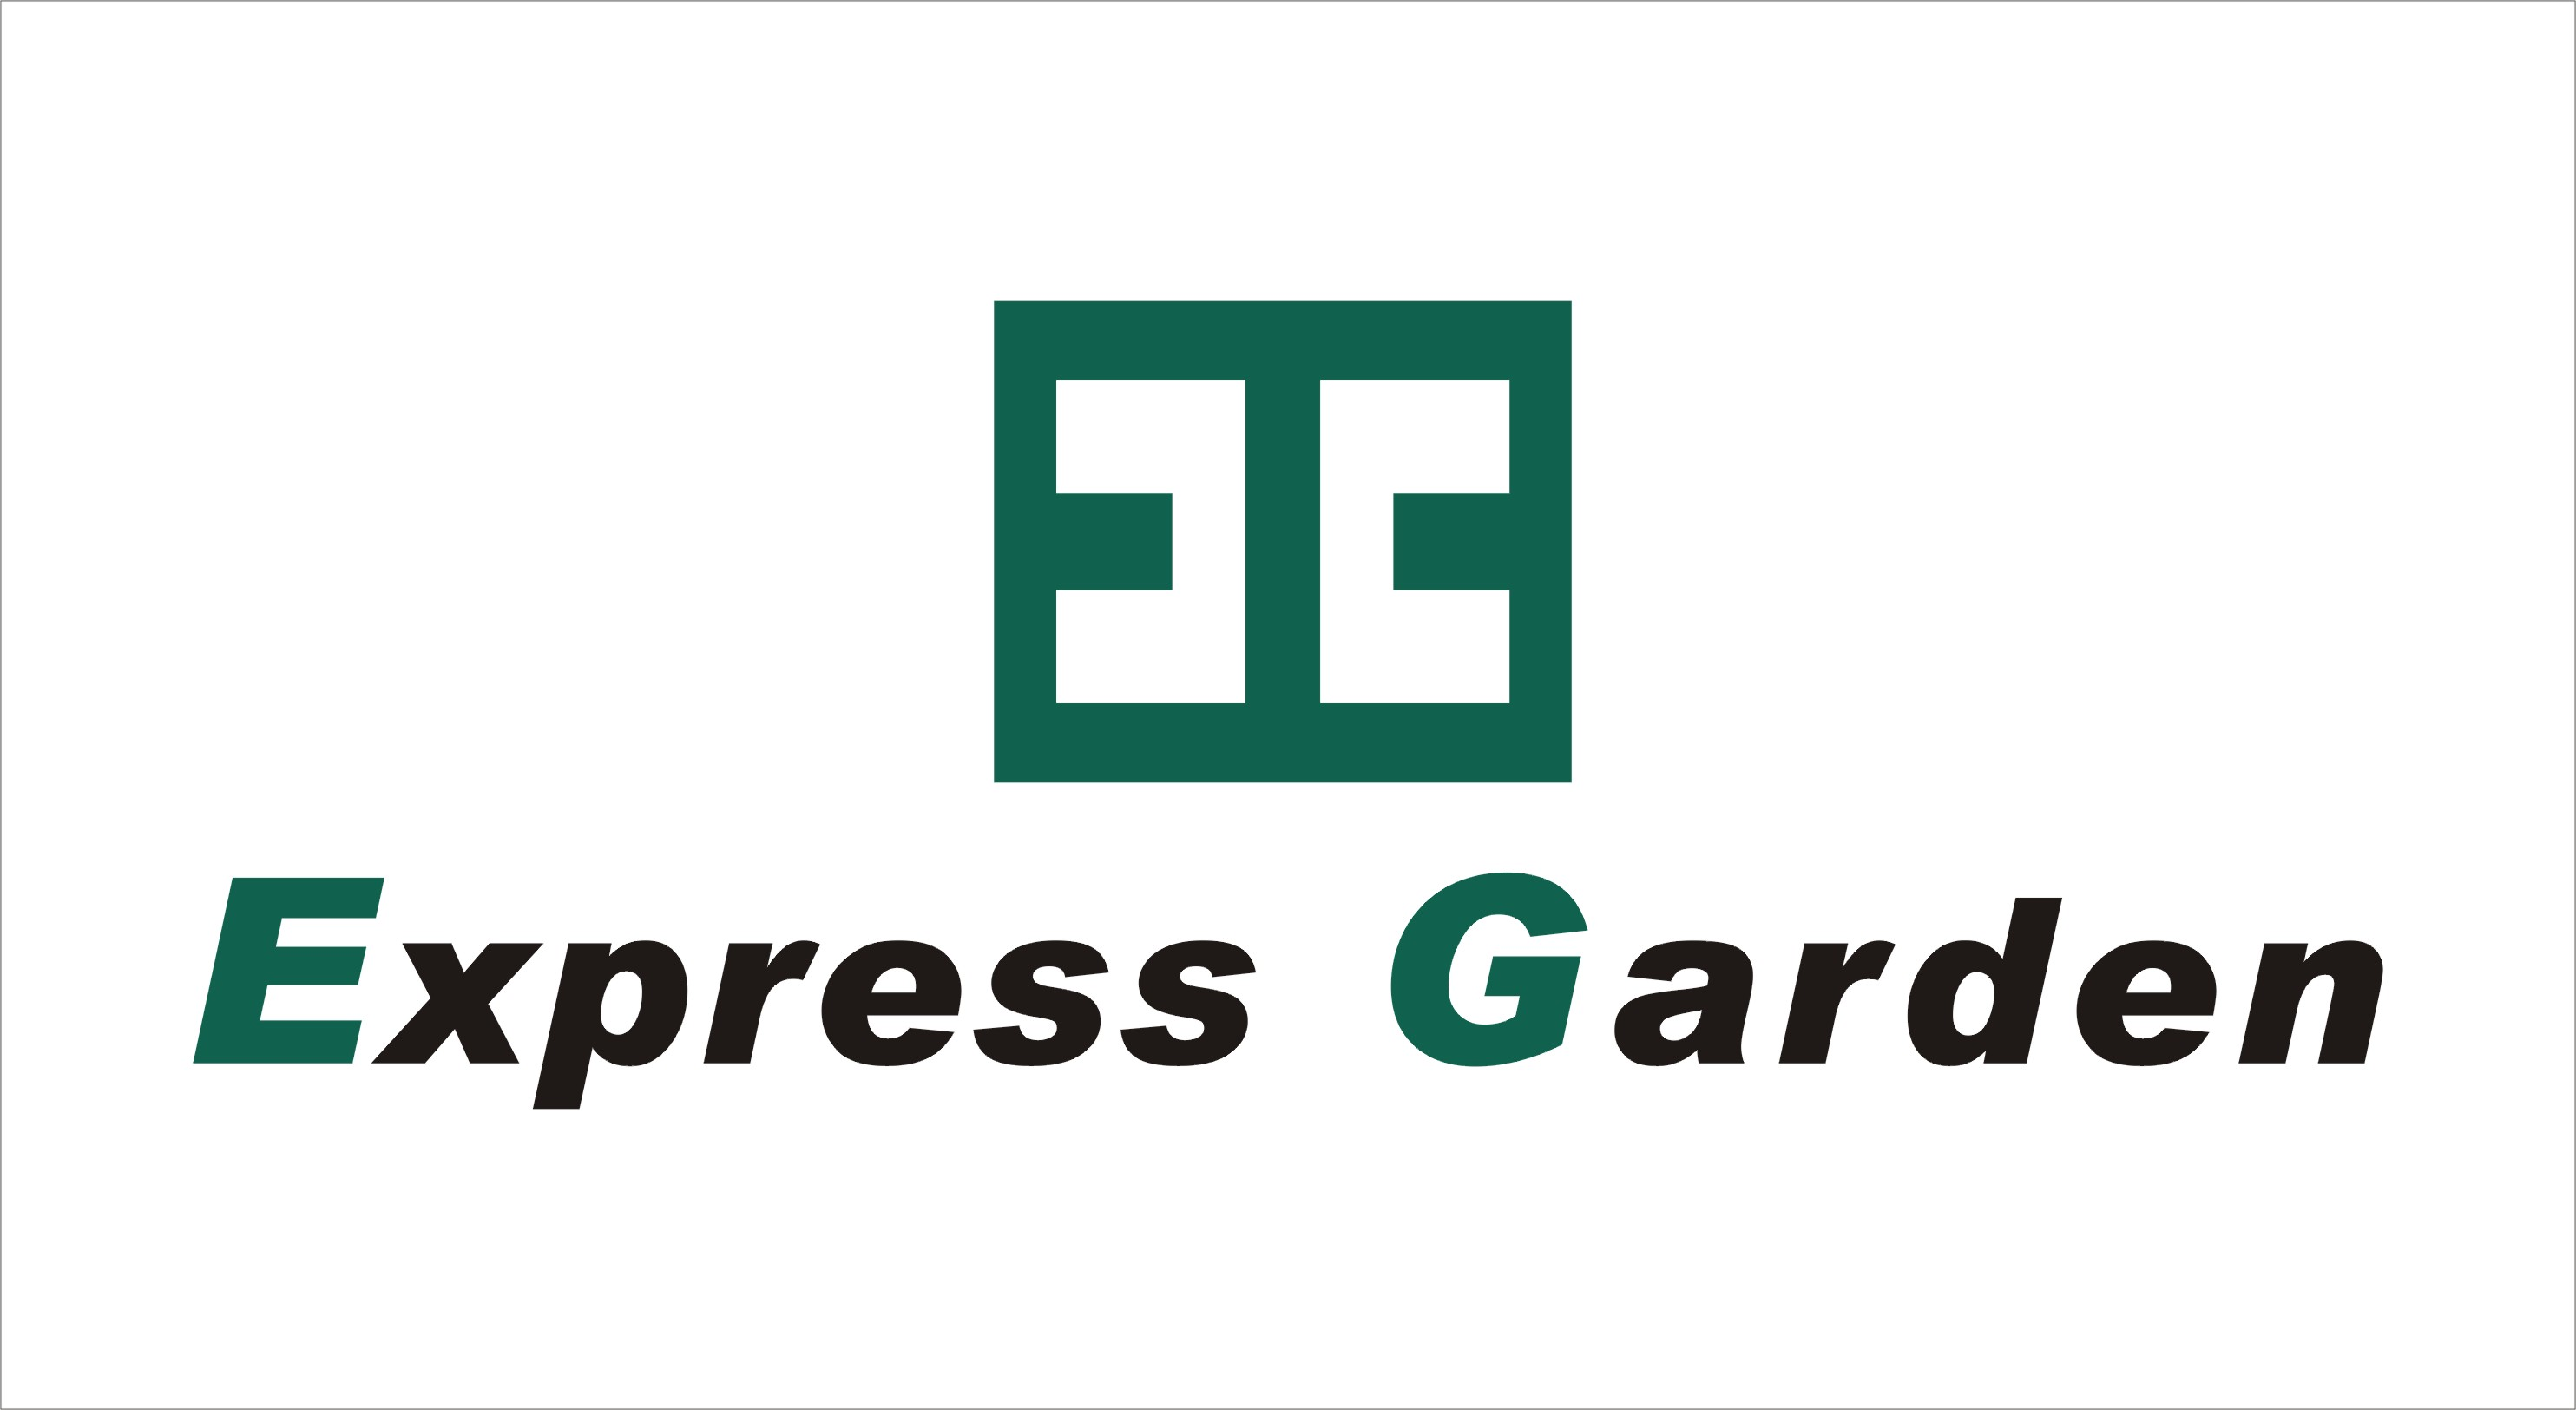 EXPRESS GARDEN (CHINA) LTD.